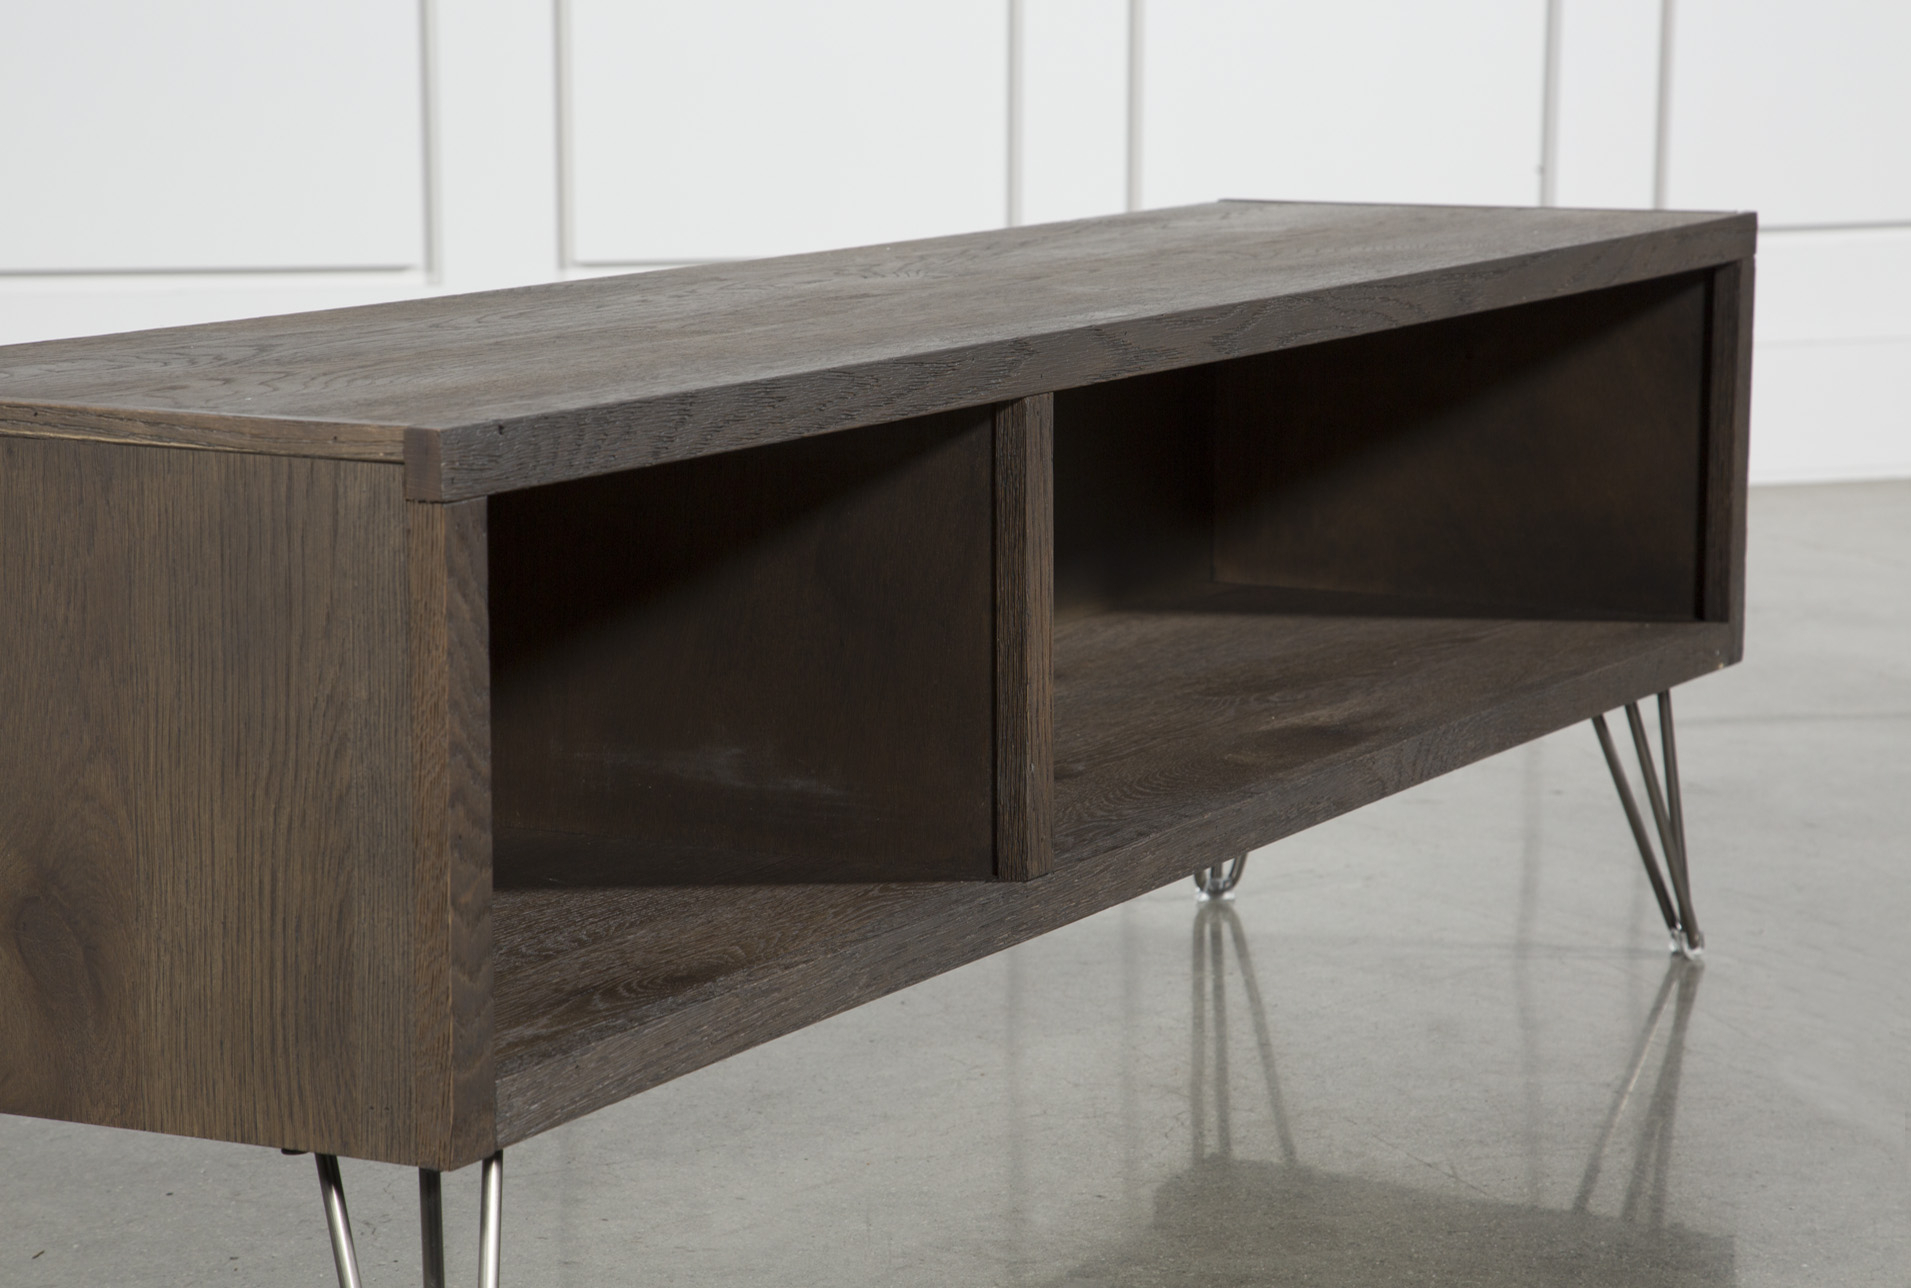 Melrose Barnhouse Brown 65 Inch Lowboy Tv Stand | Lowboy And Products in Melrose Barnhouse Brown 65 Inch Lowboy Tv Stands (Image 30 of 30)